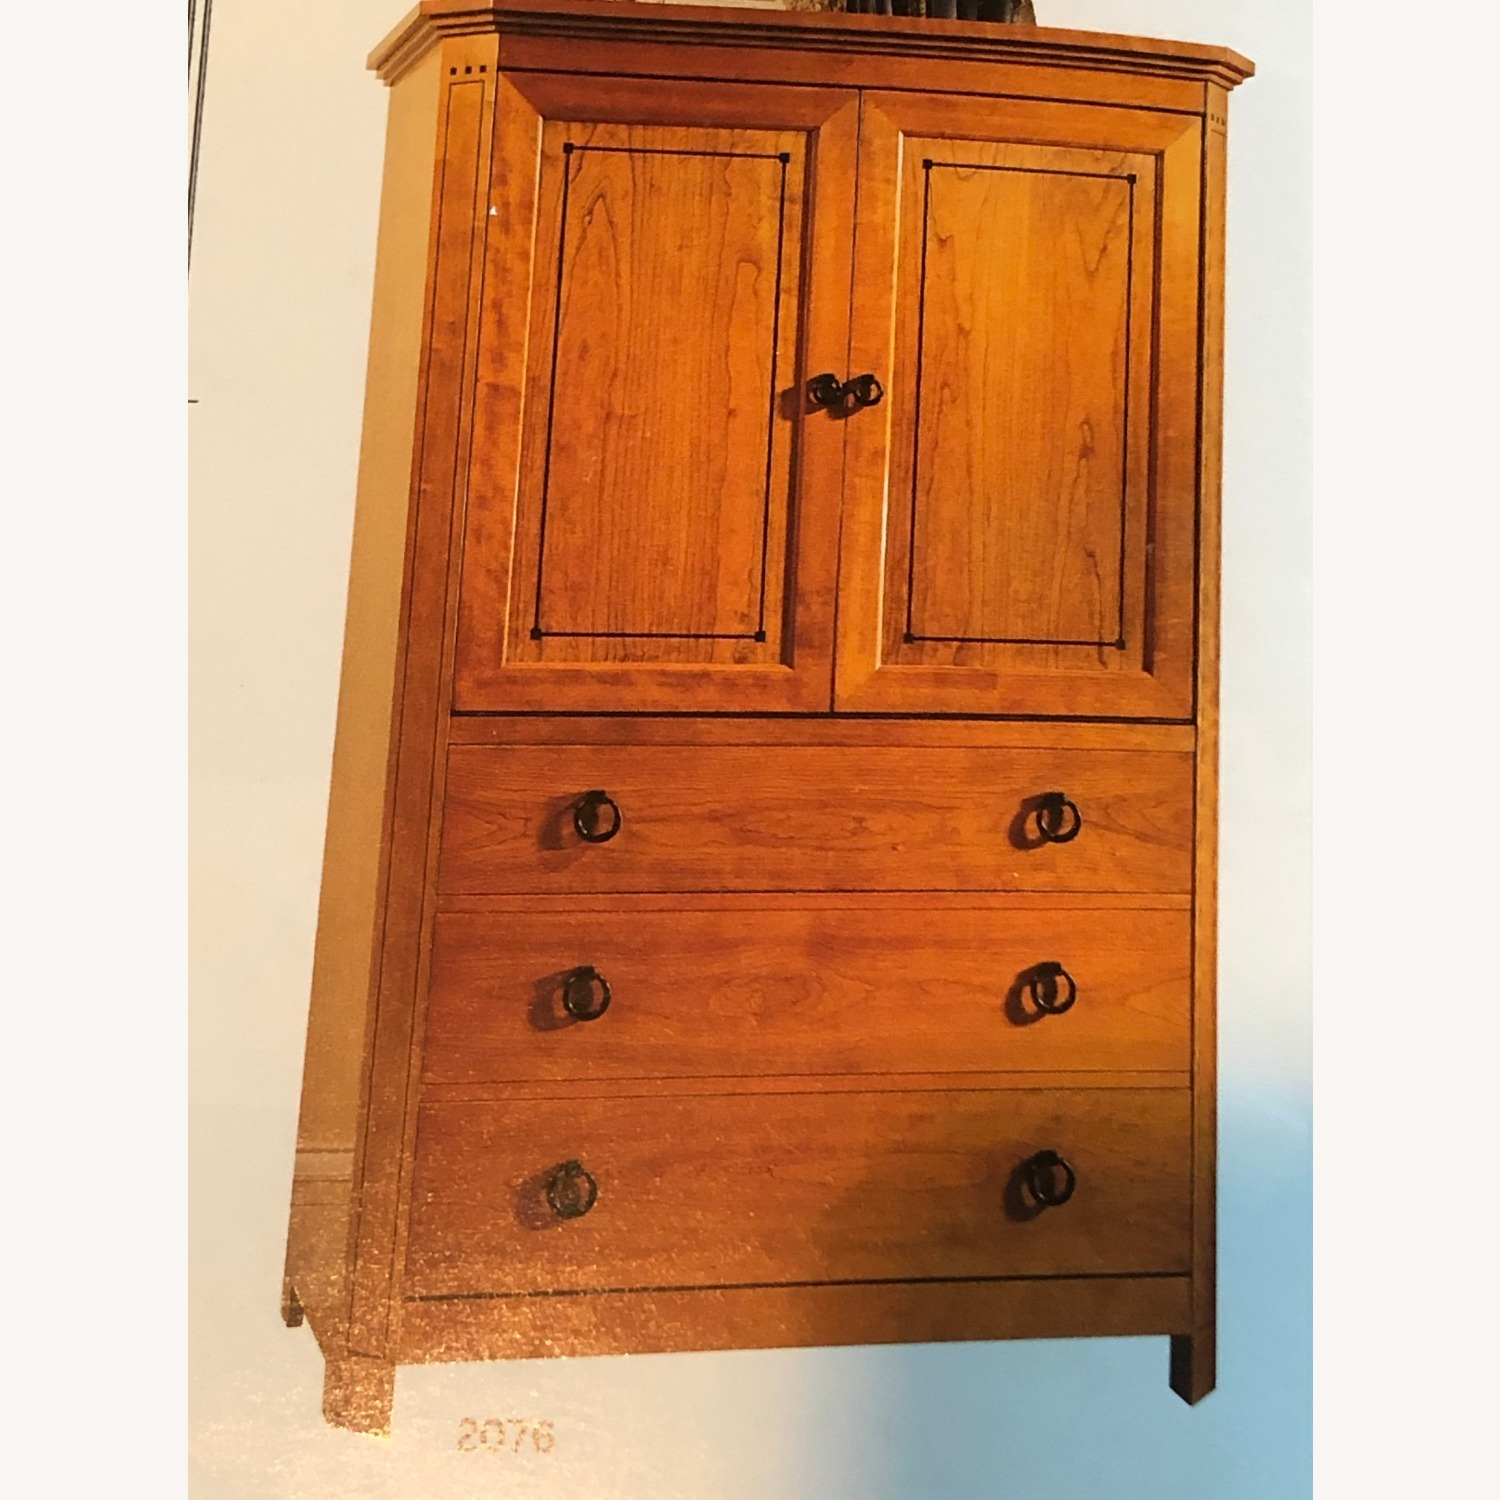 Stickley Armoire with TV and Drawers - image-1